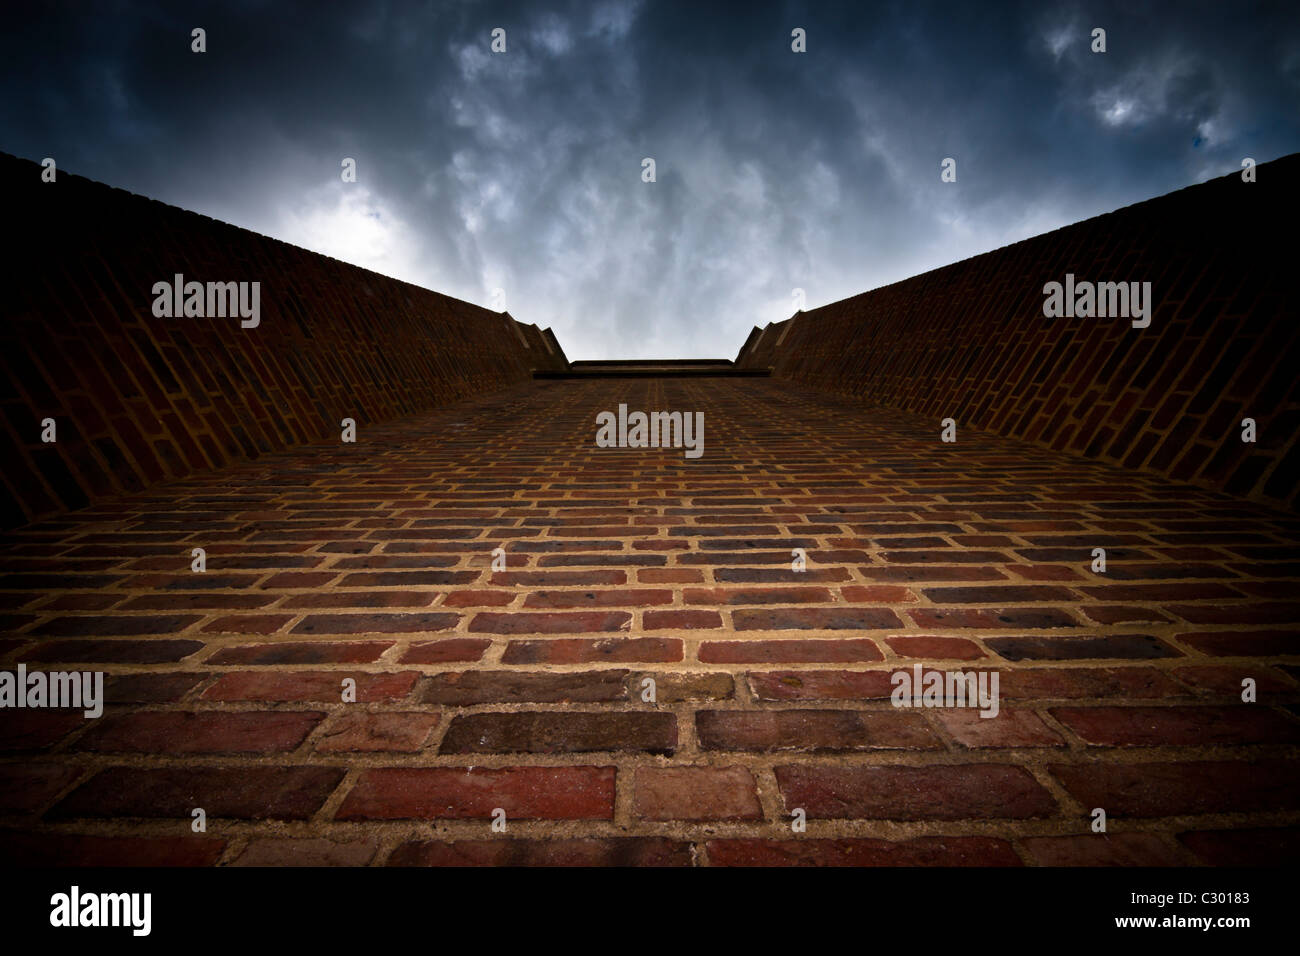 Abstract photo of brick wall and dramatic dark sky - Stock Image